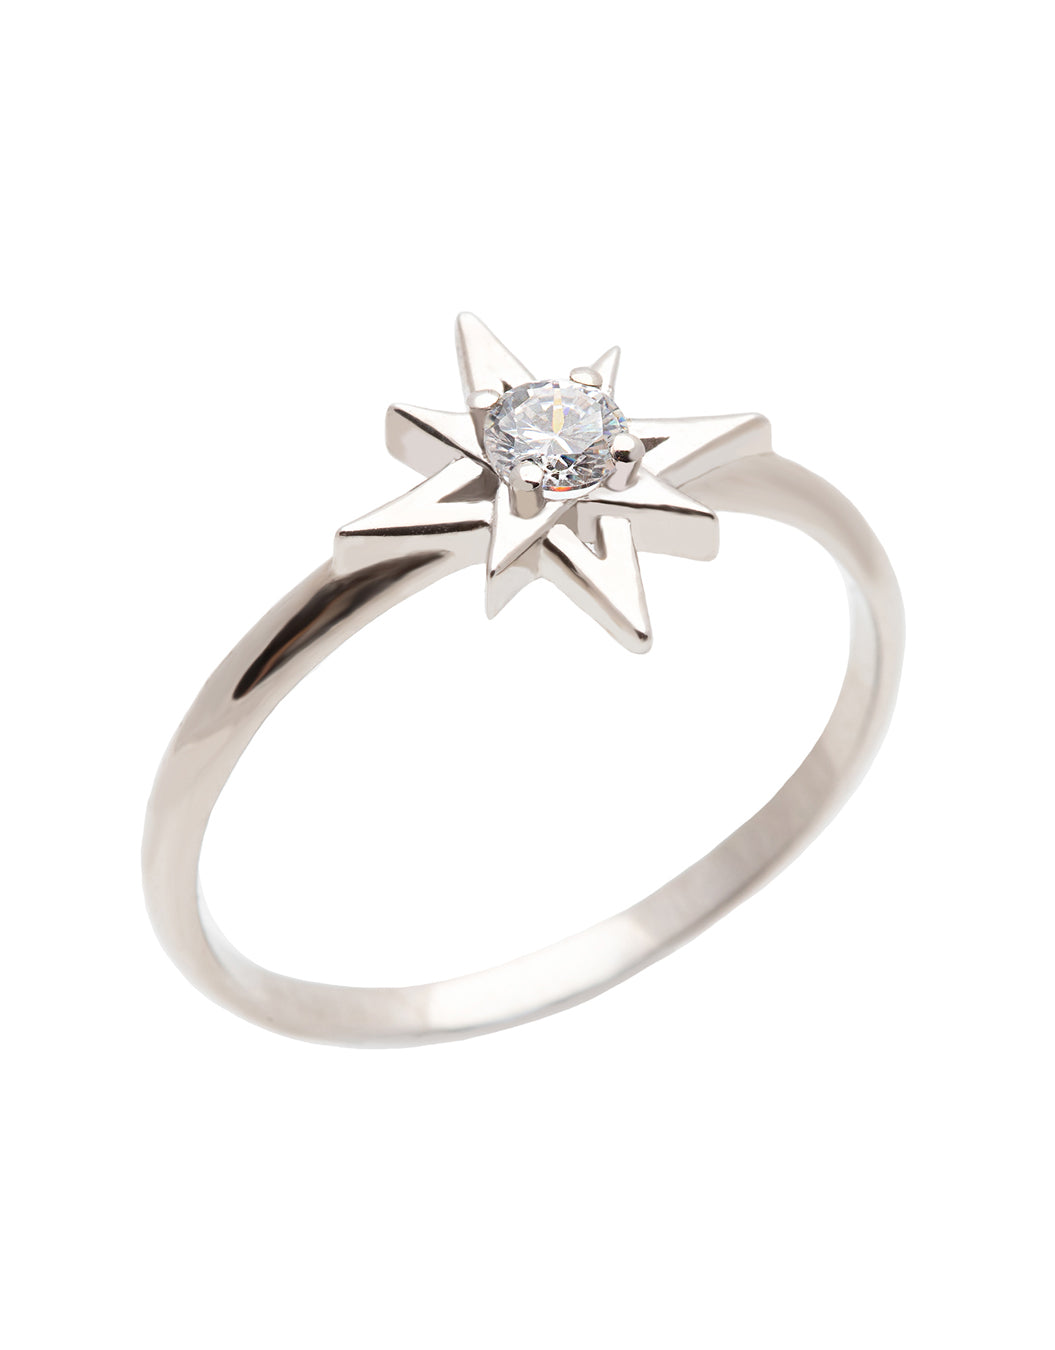 Northern Star Diamond Ring